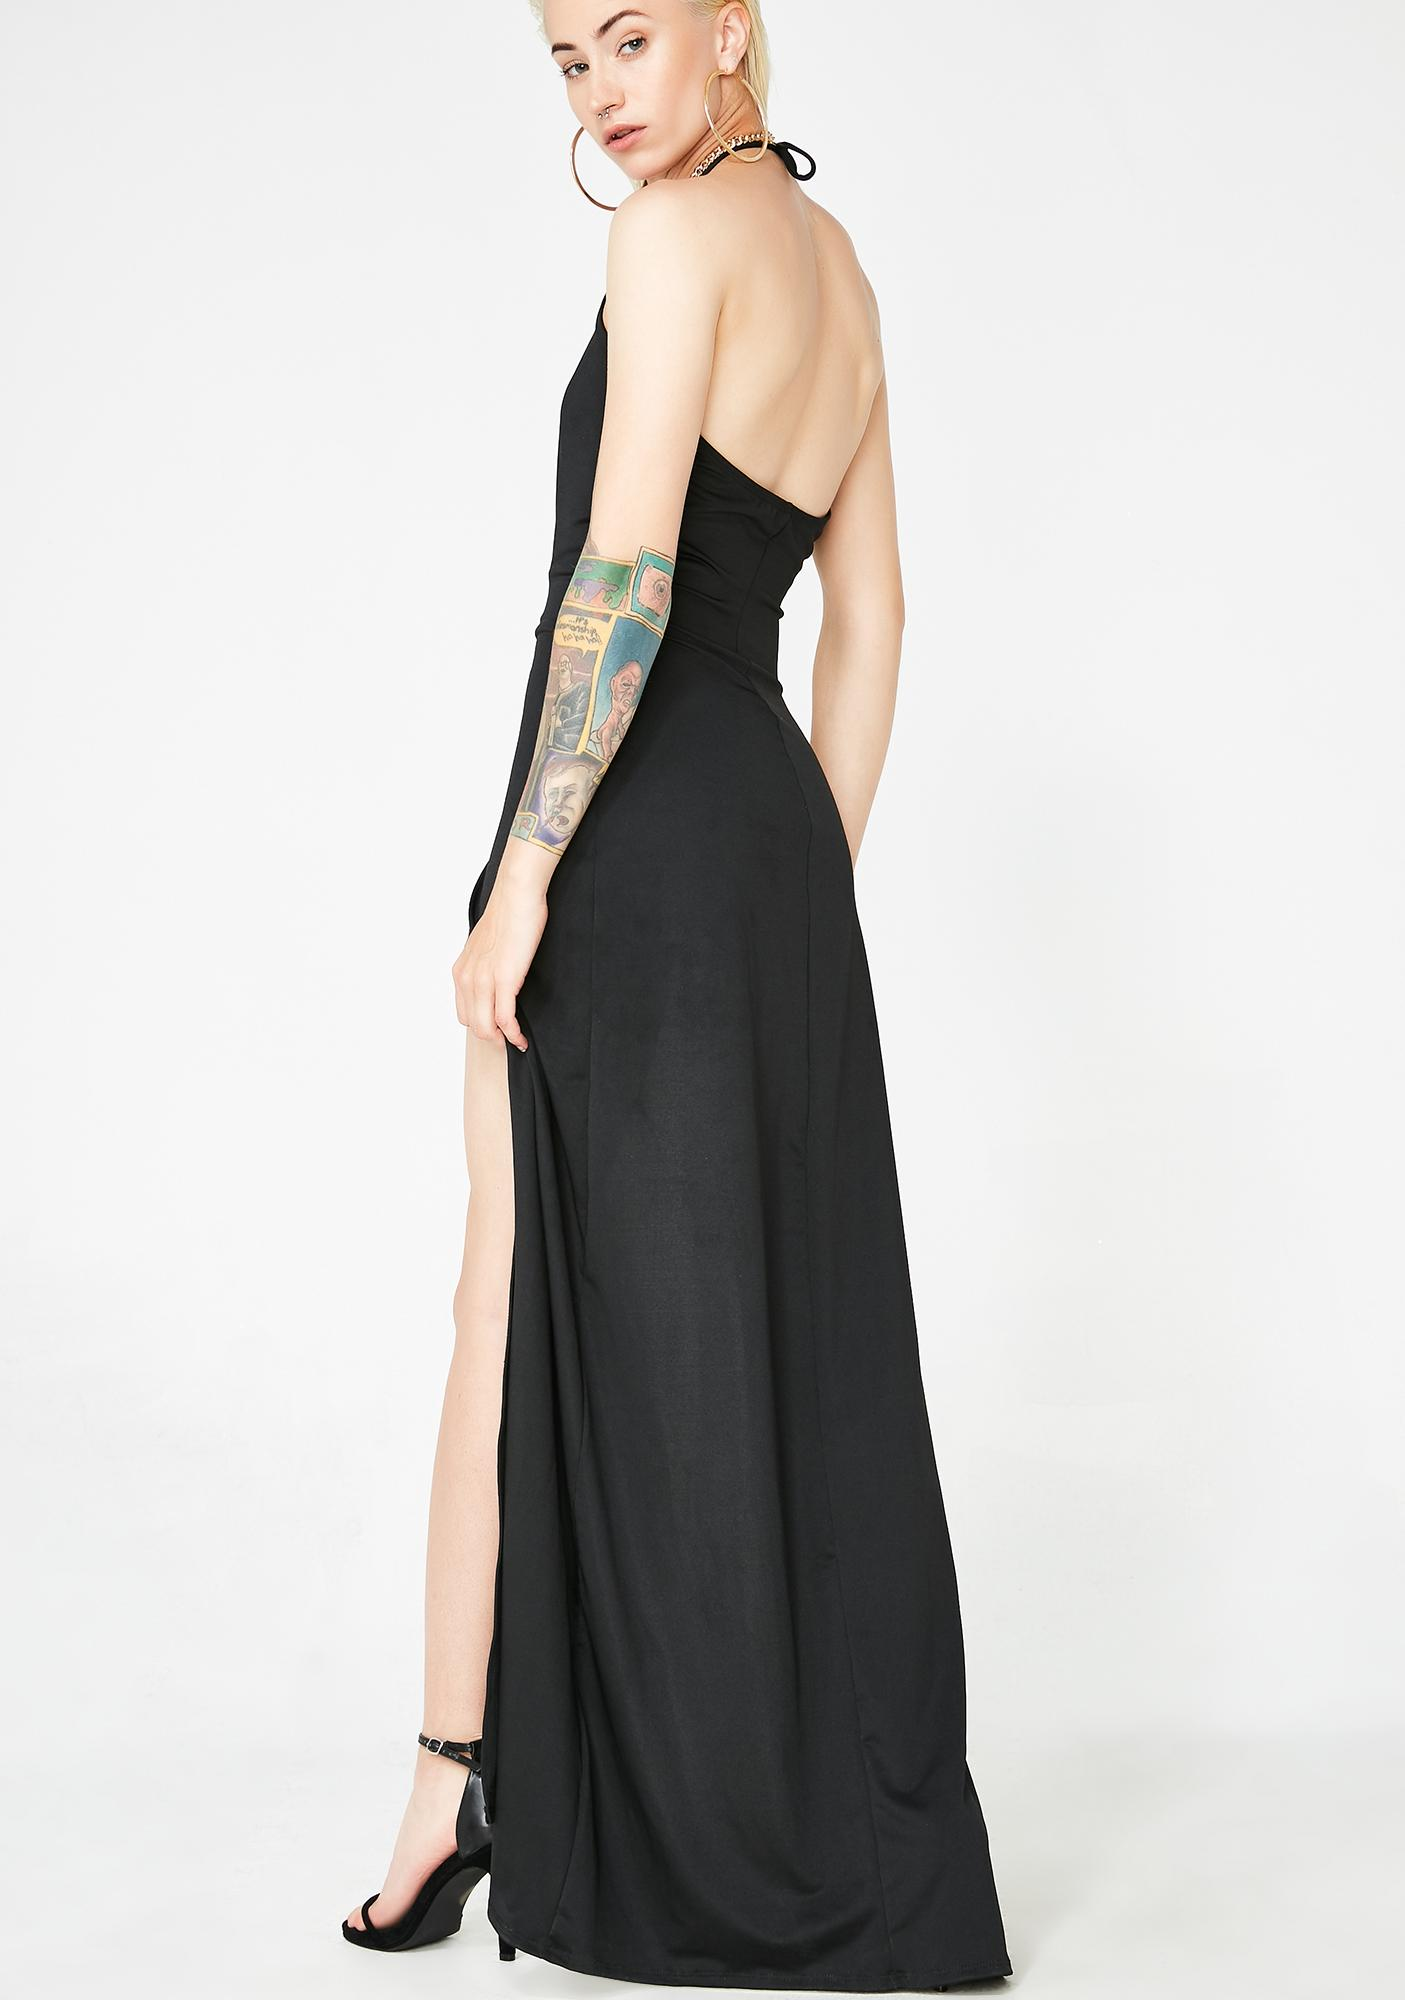 Shmoney Bags Halter Dress